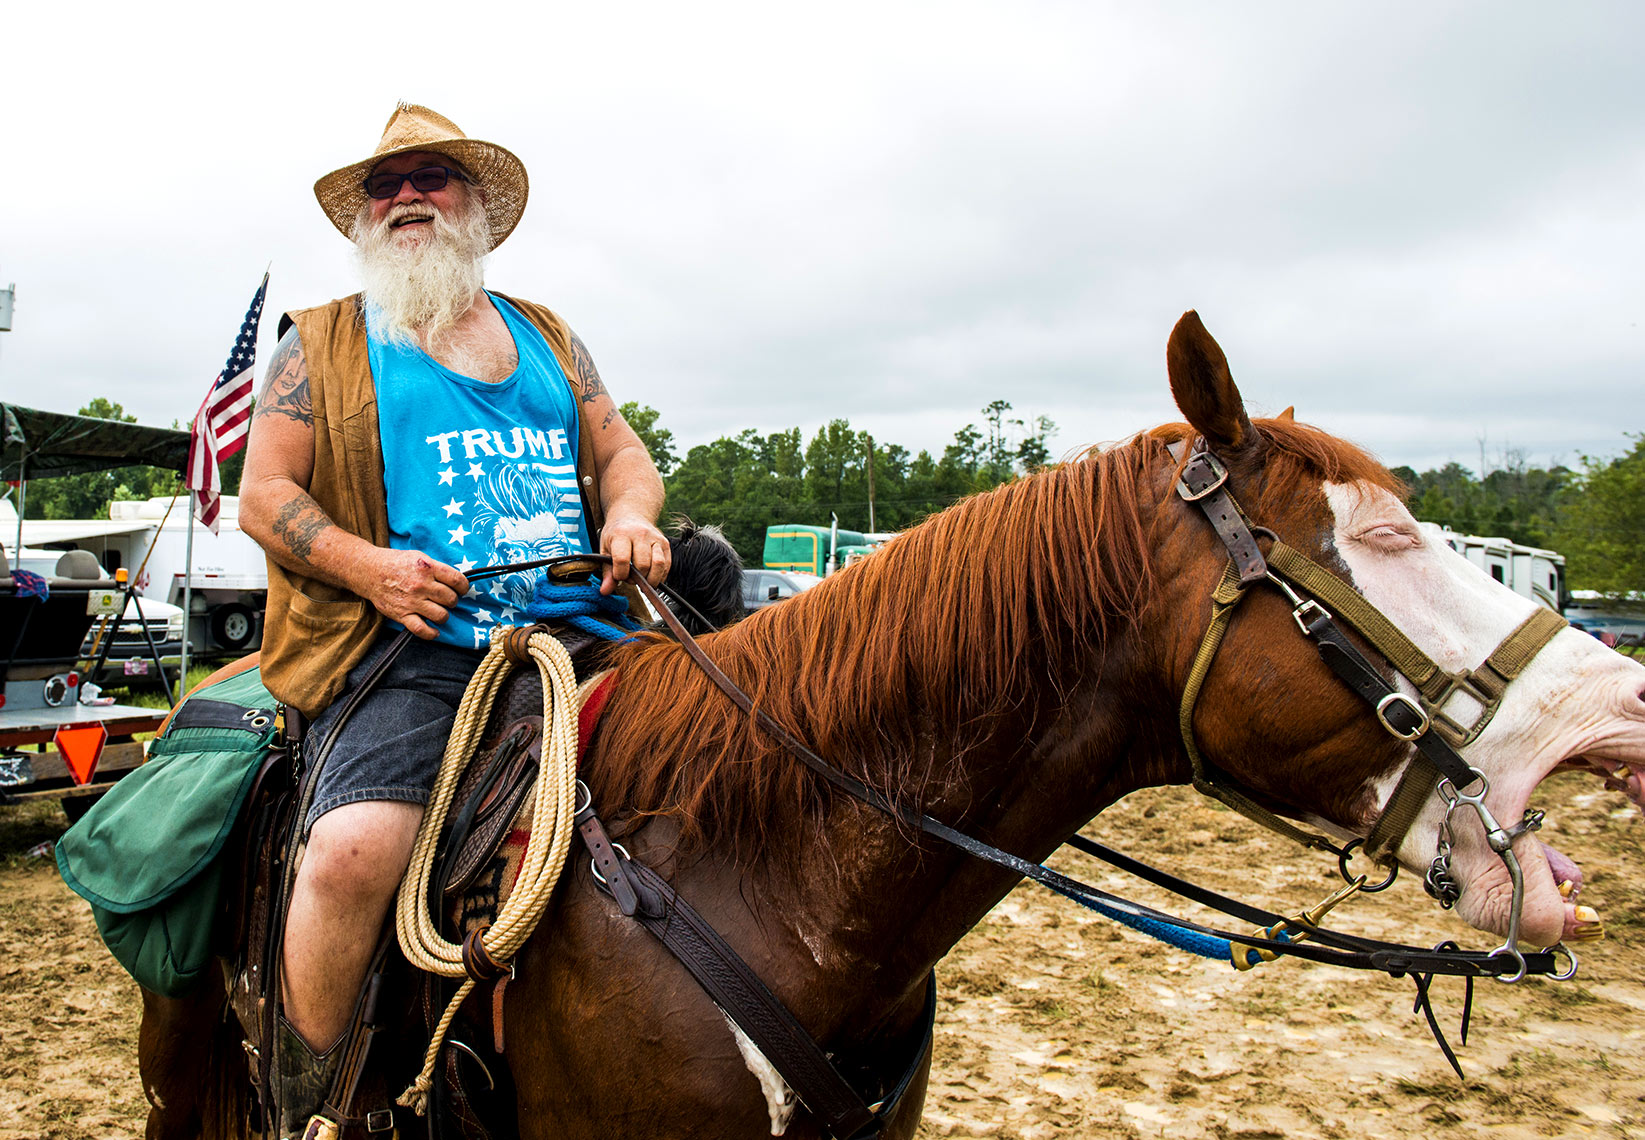 Trump supporter Mule days Benson Raleigh editorial photography Bryan Regan